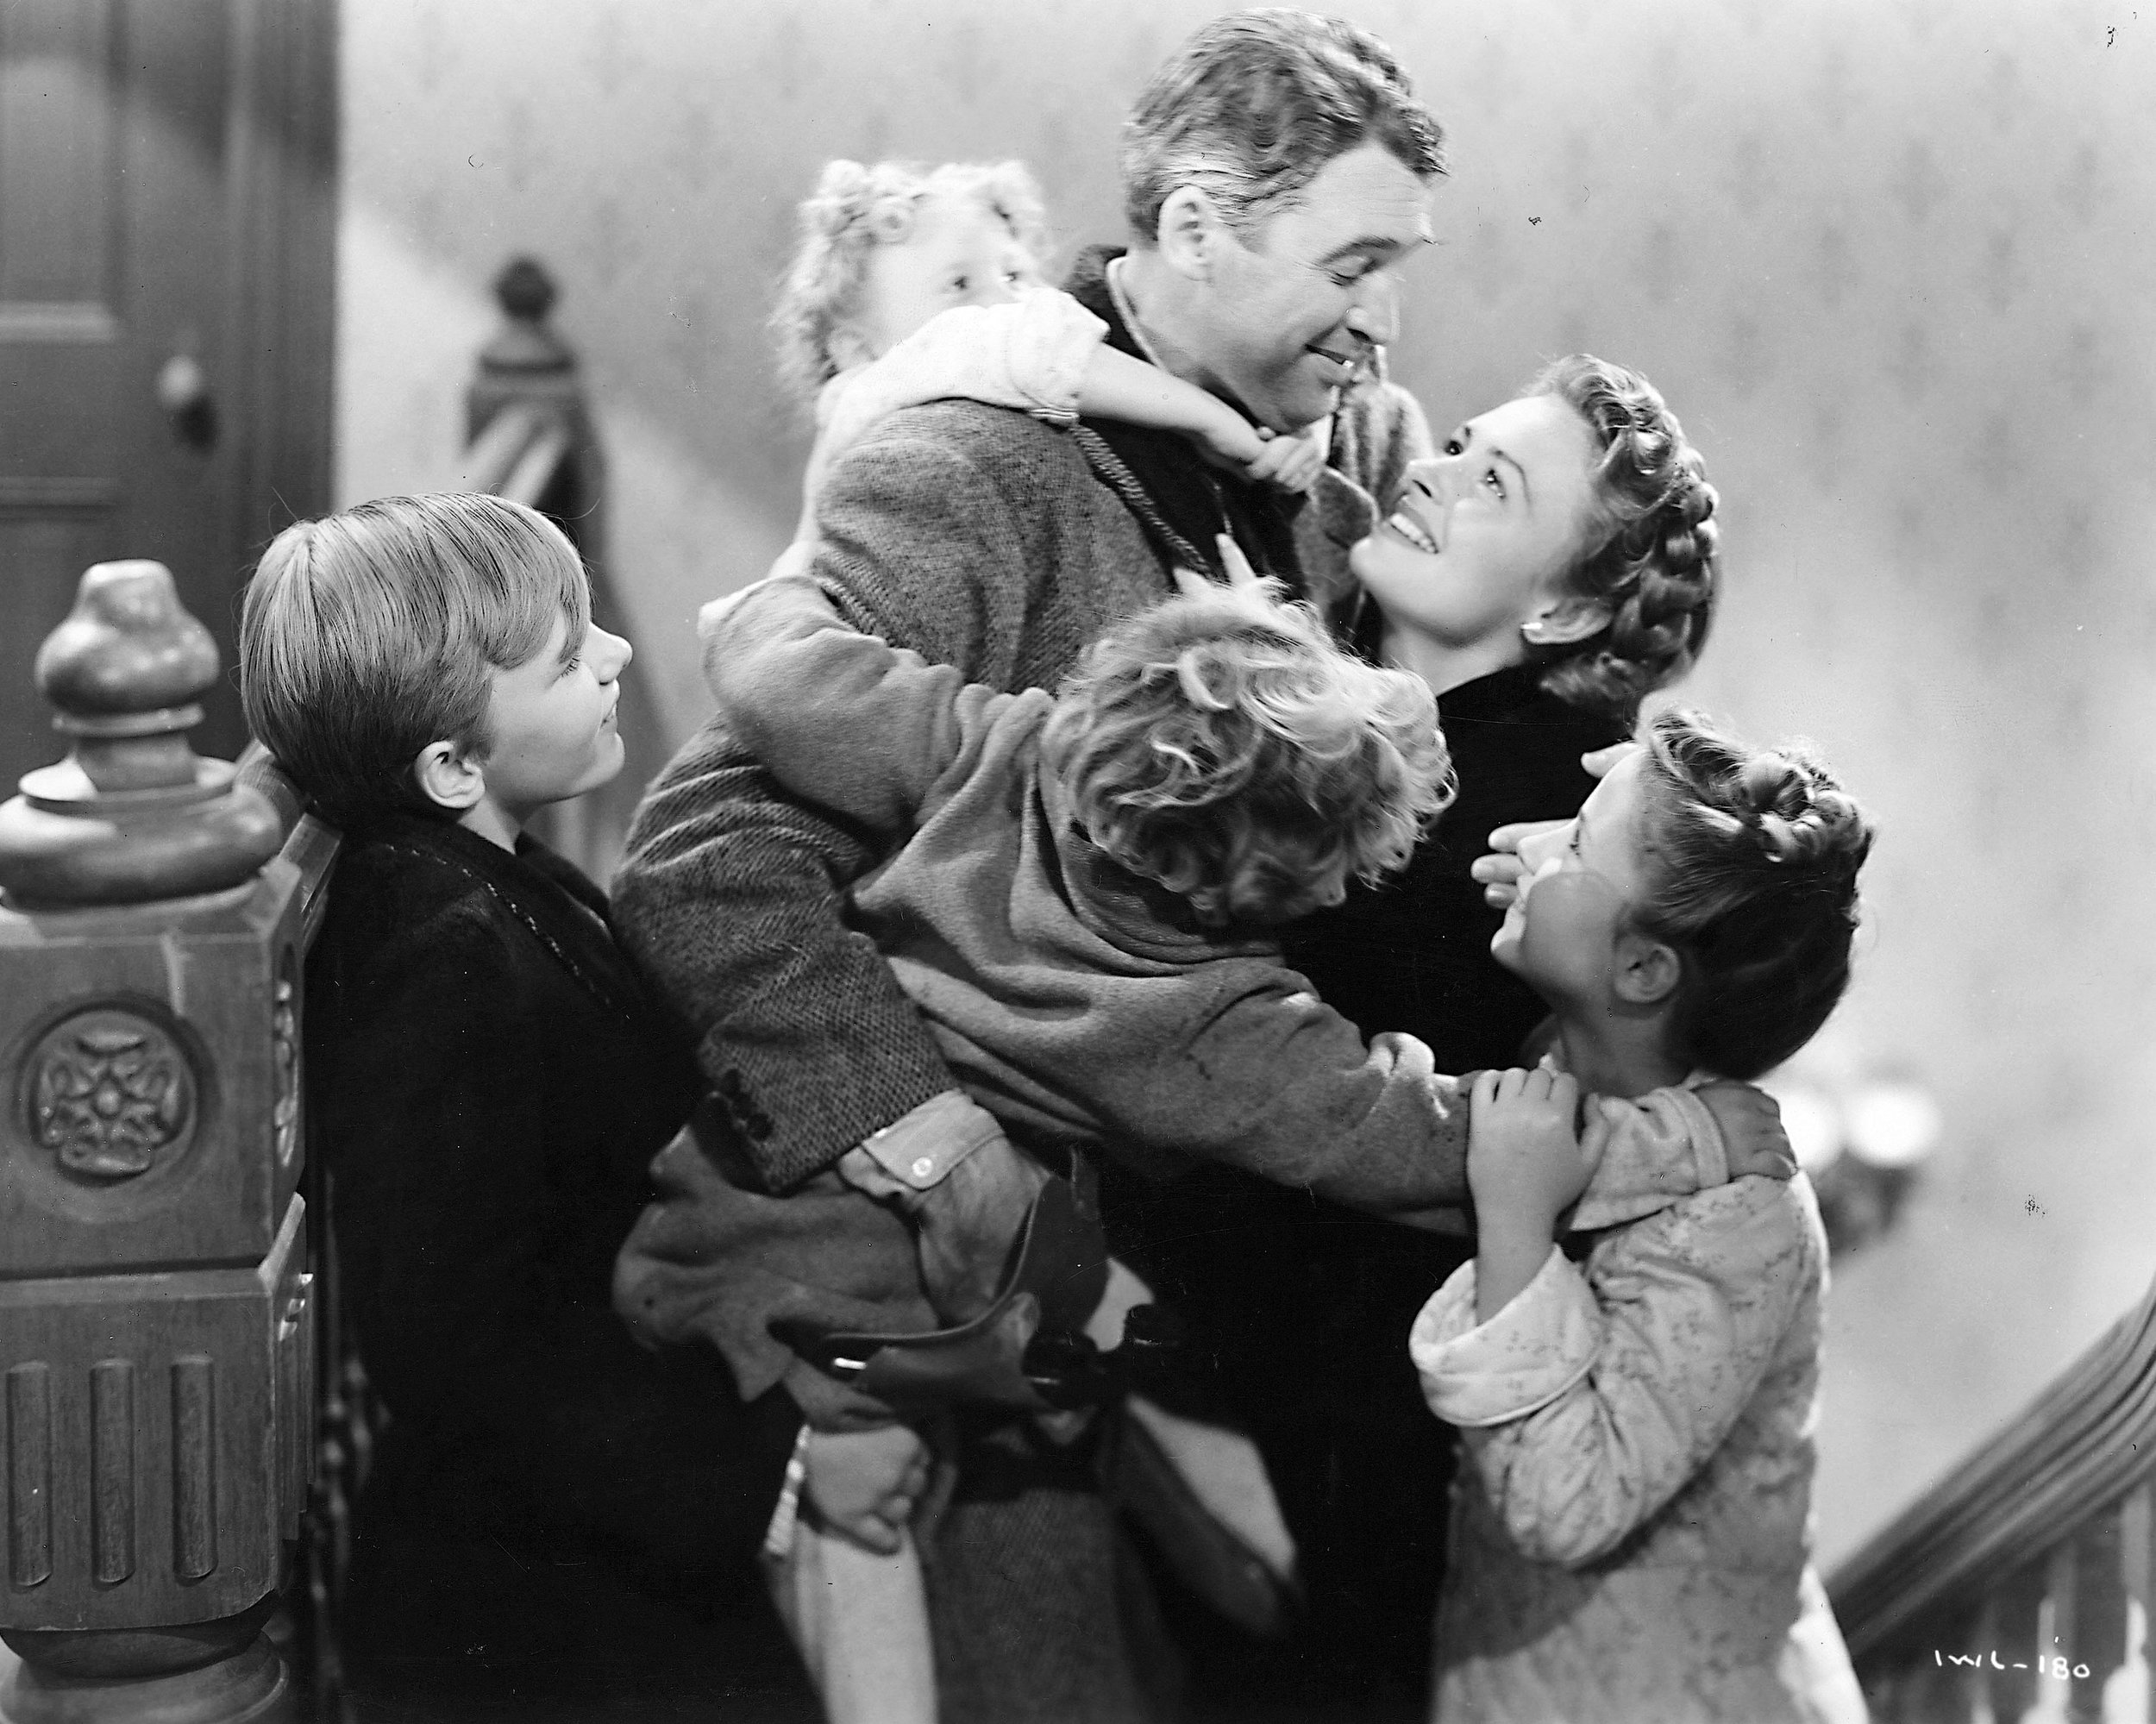 It's A Wonderful Life was his most iconic film